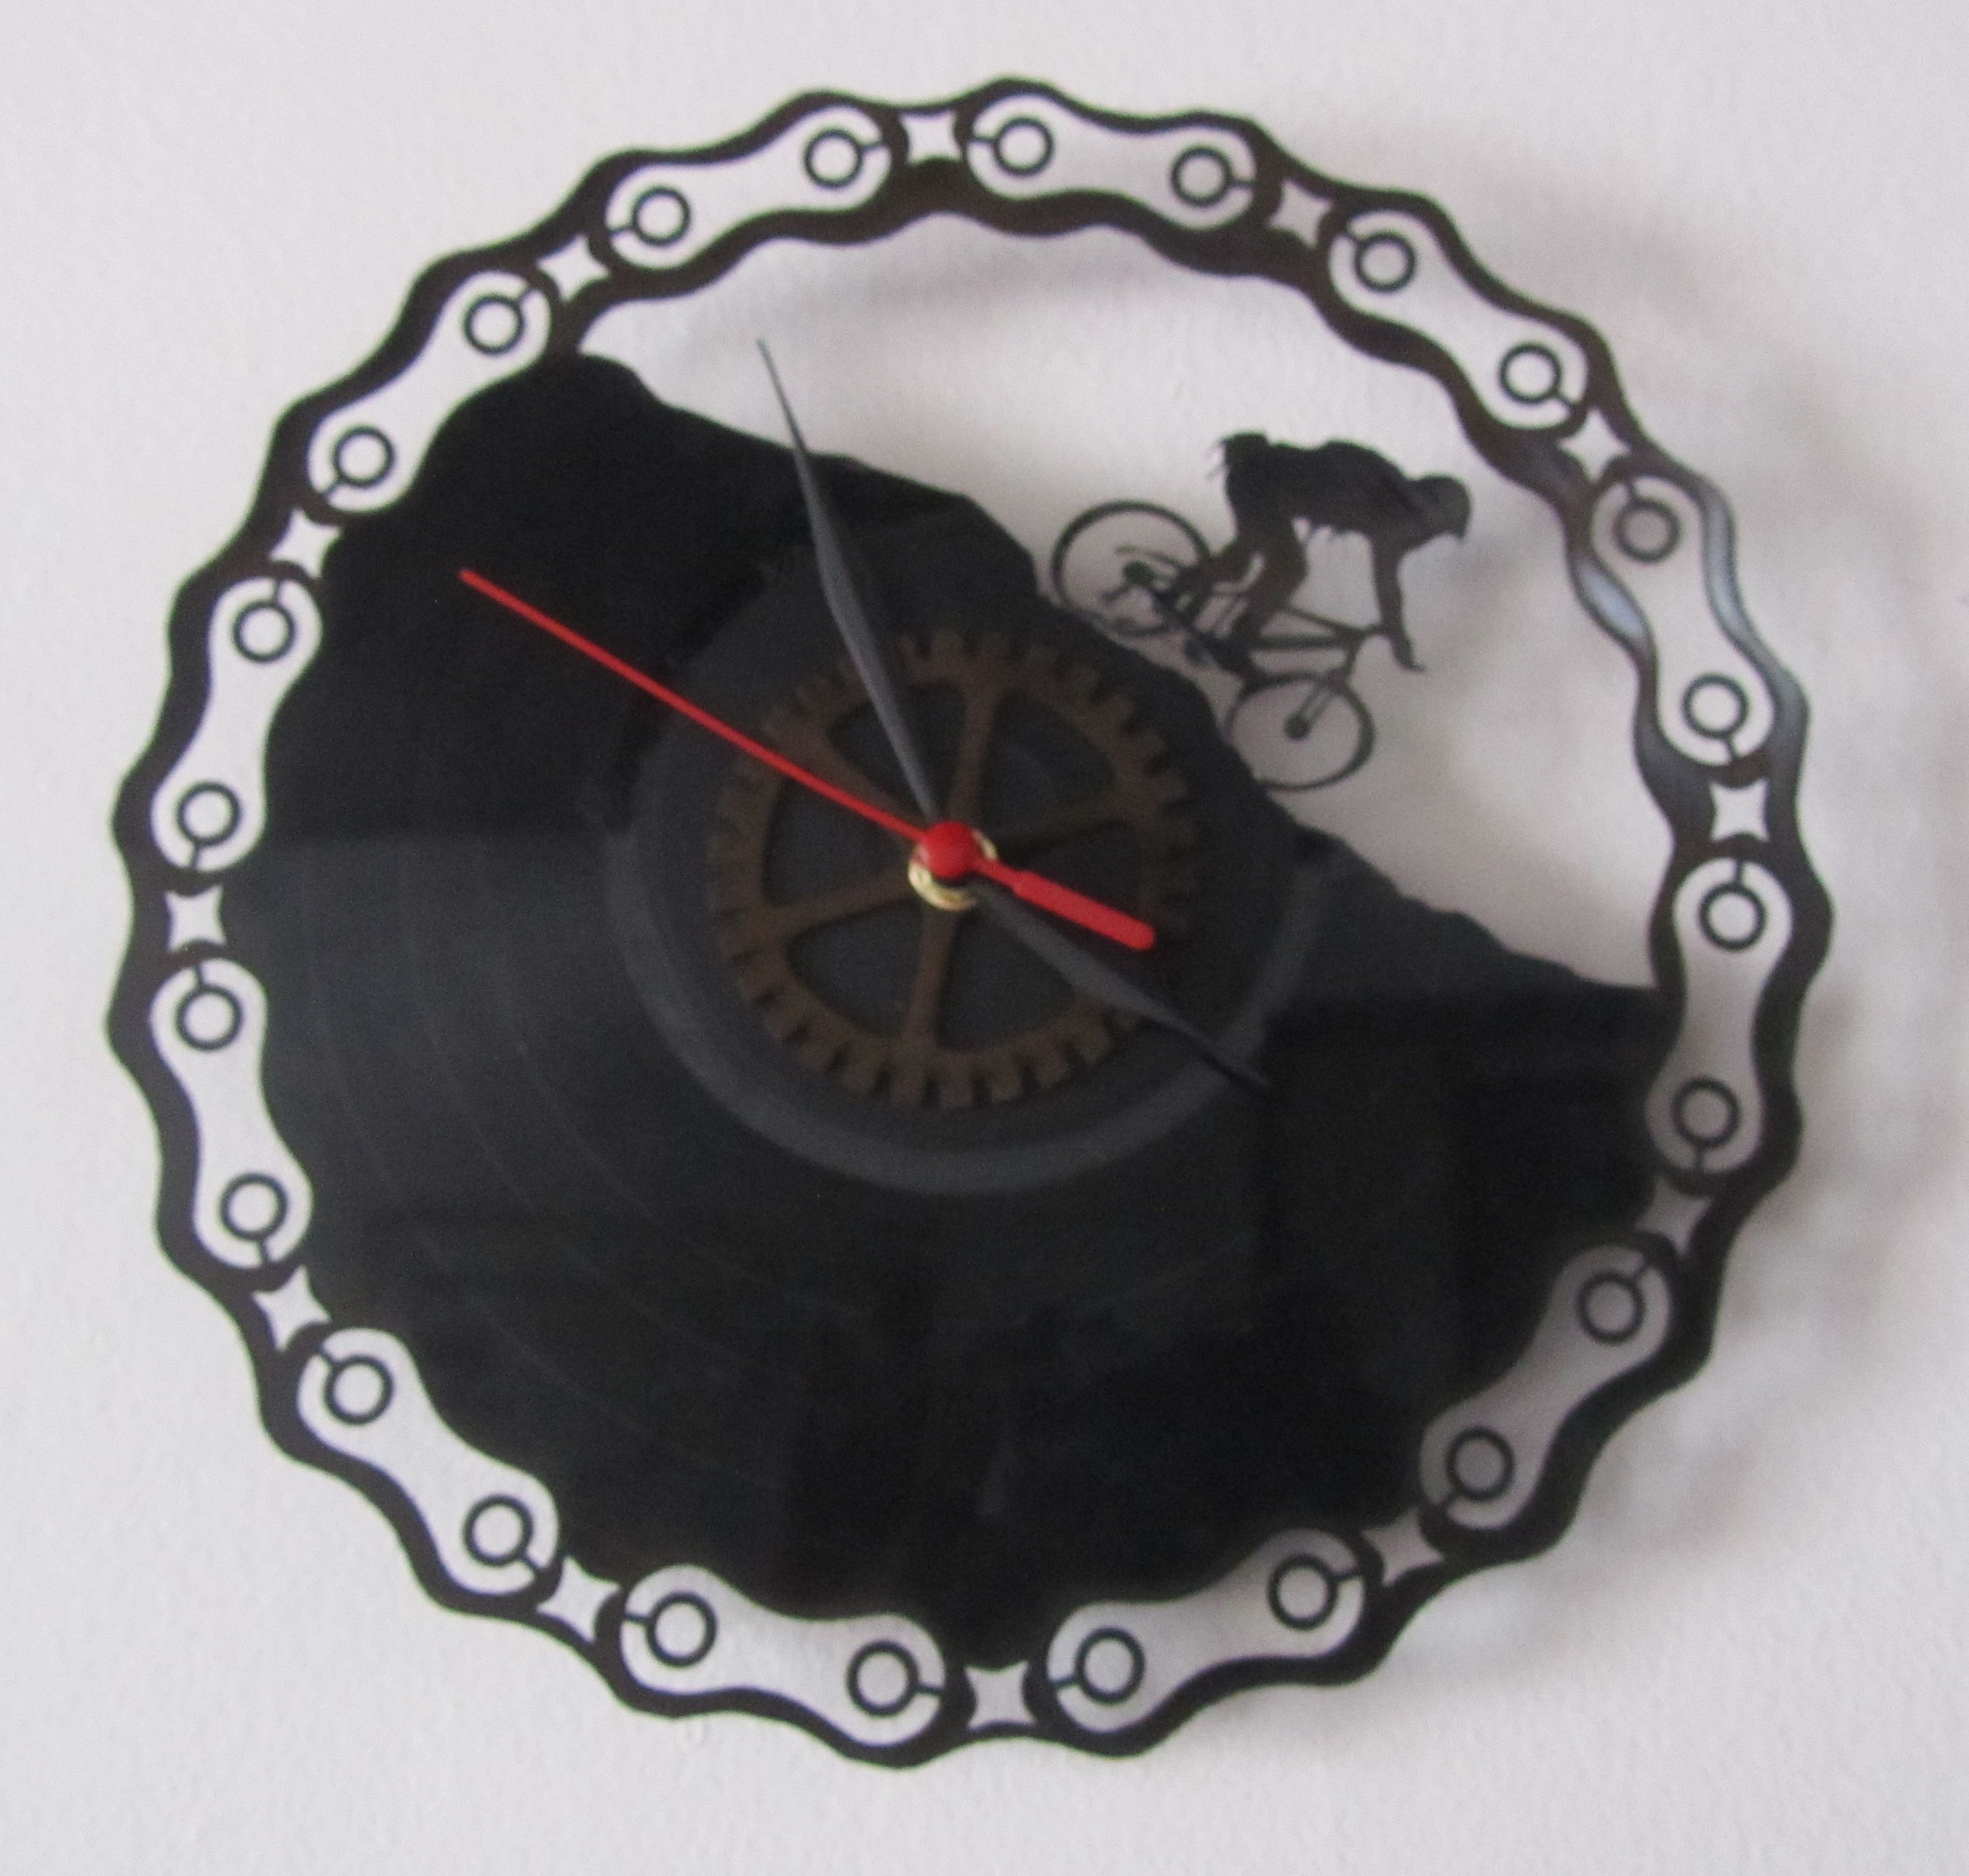 pin by roy marrero on relojes pinterest clocks cnc and boating